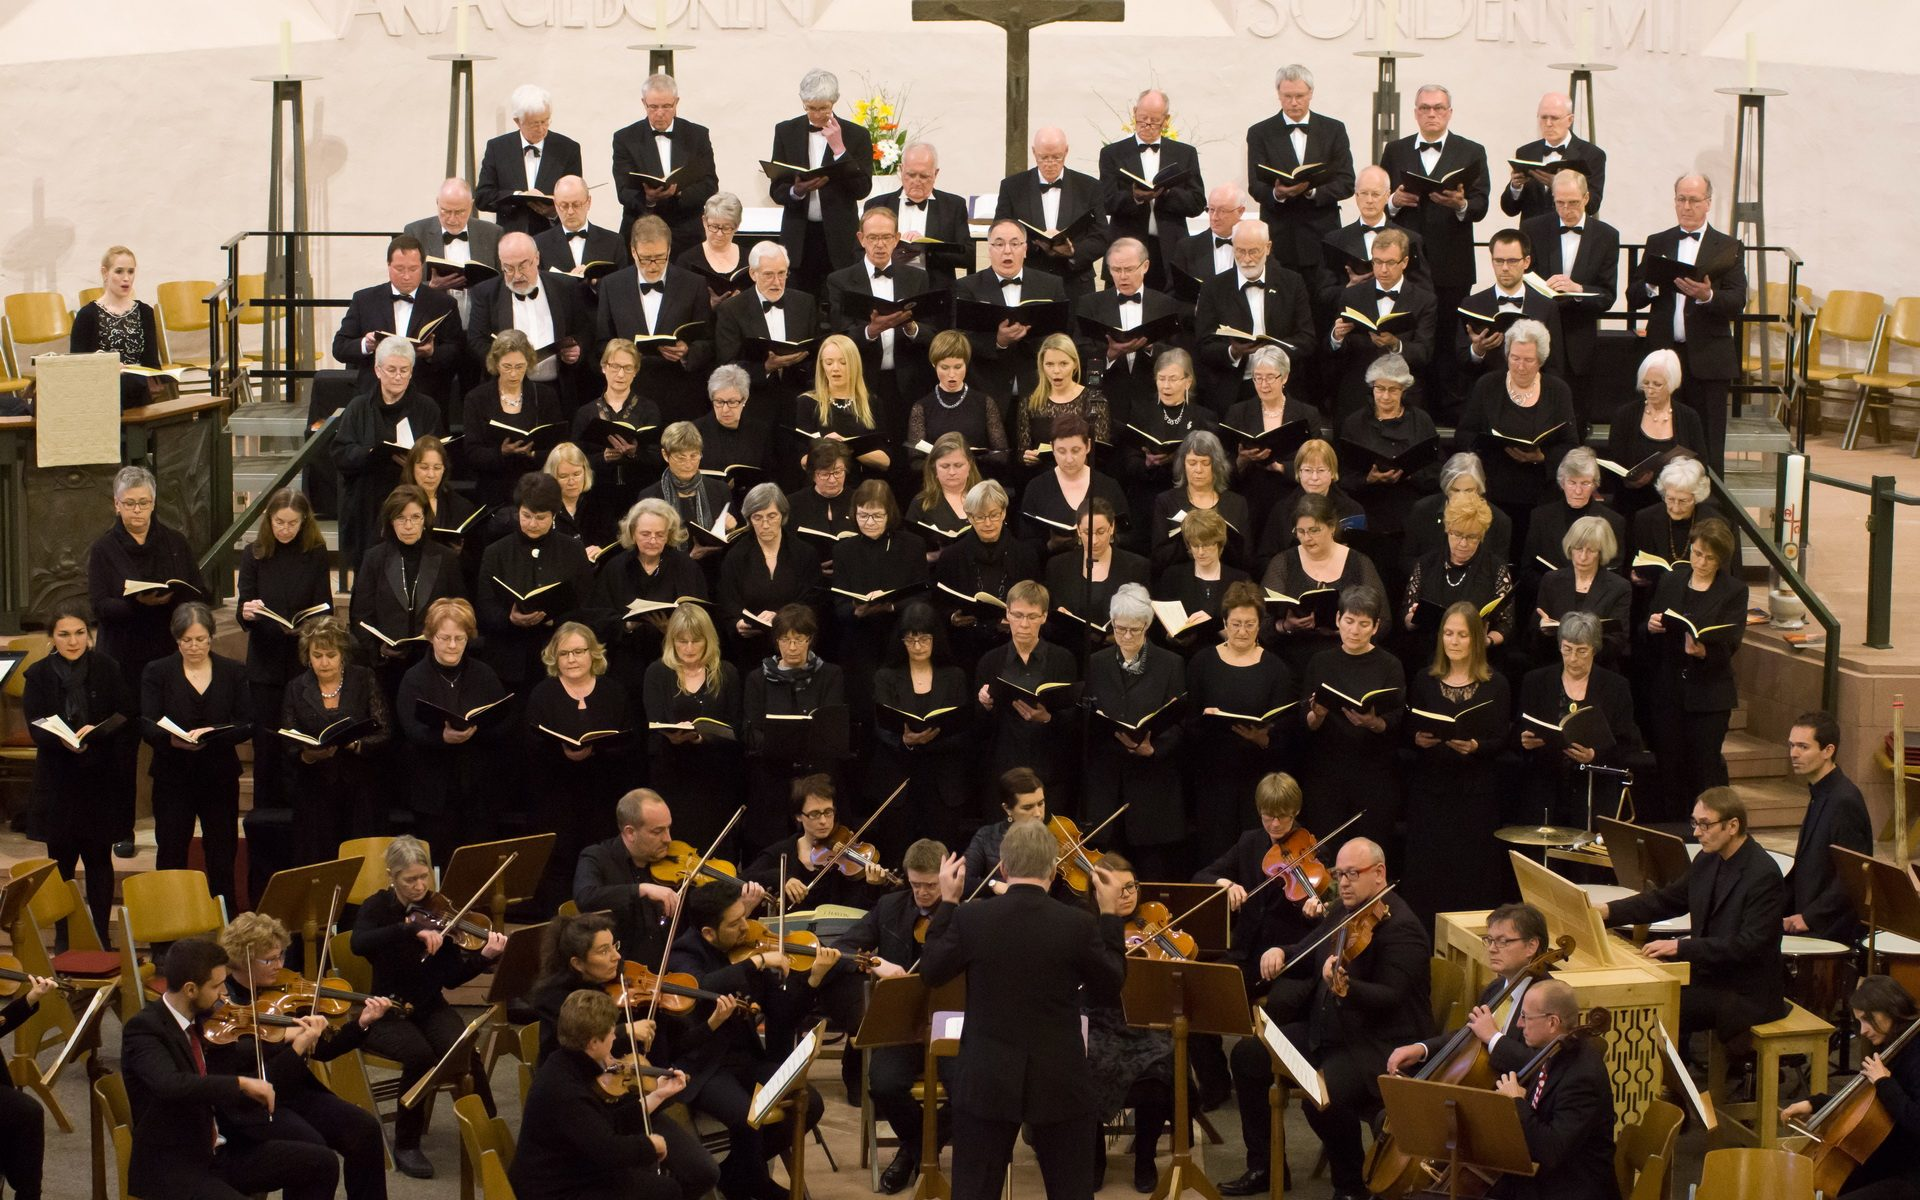 photo of the joint choirs performing in the Dreifaltigkeitskirche in April 2017